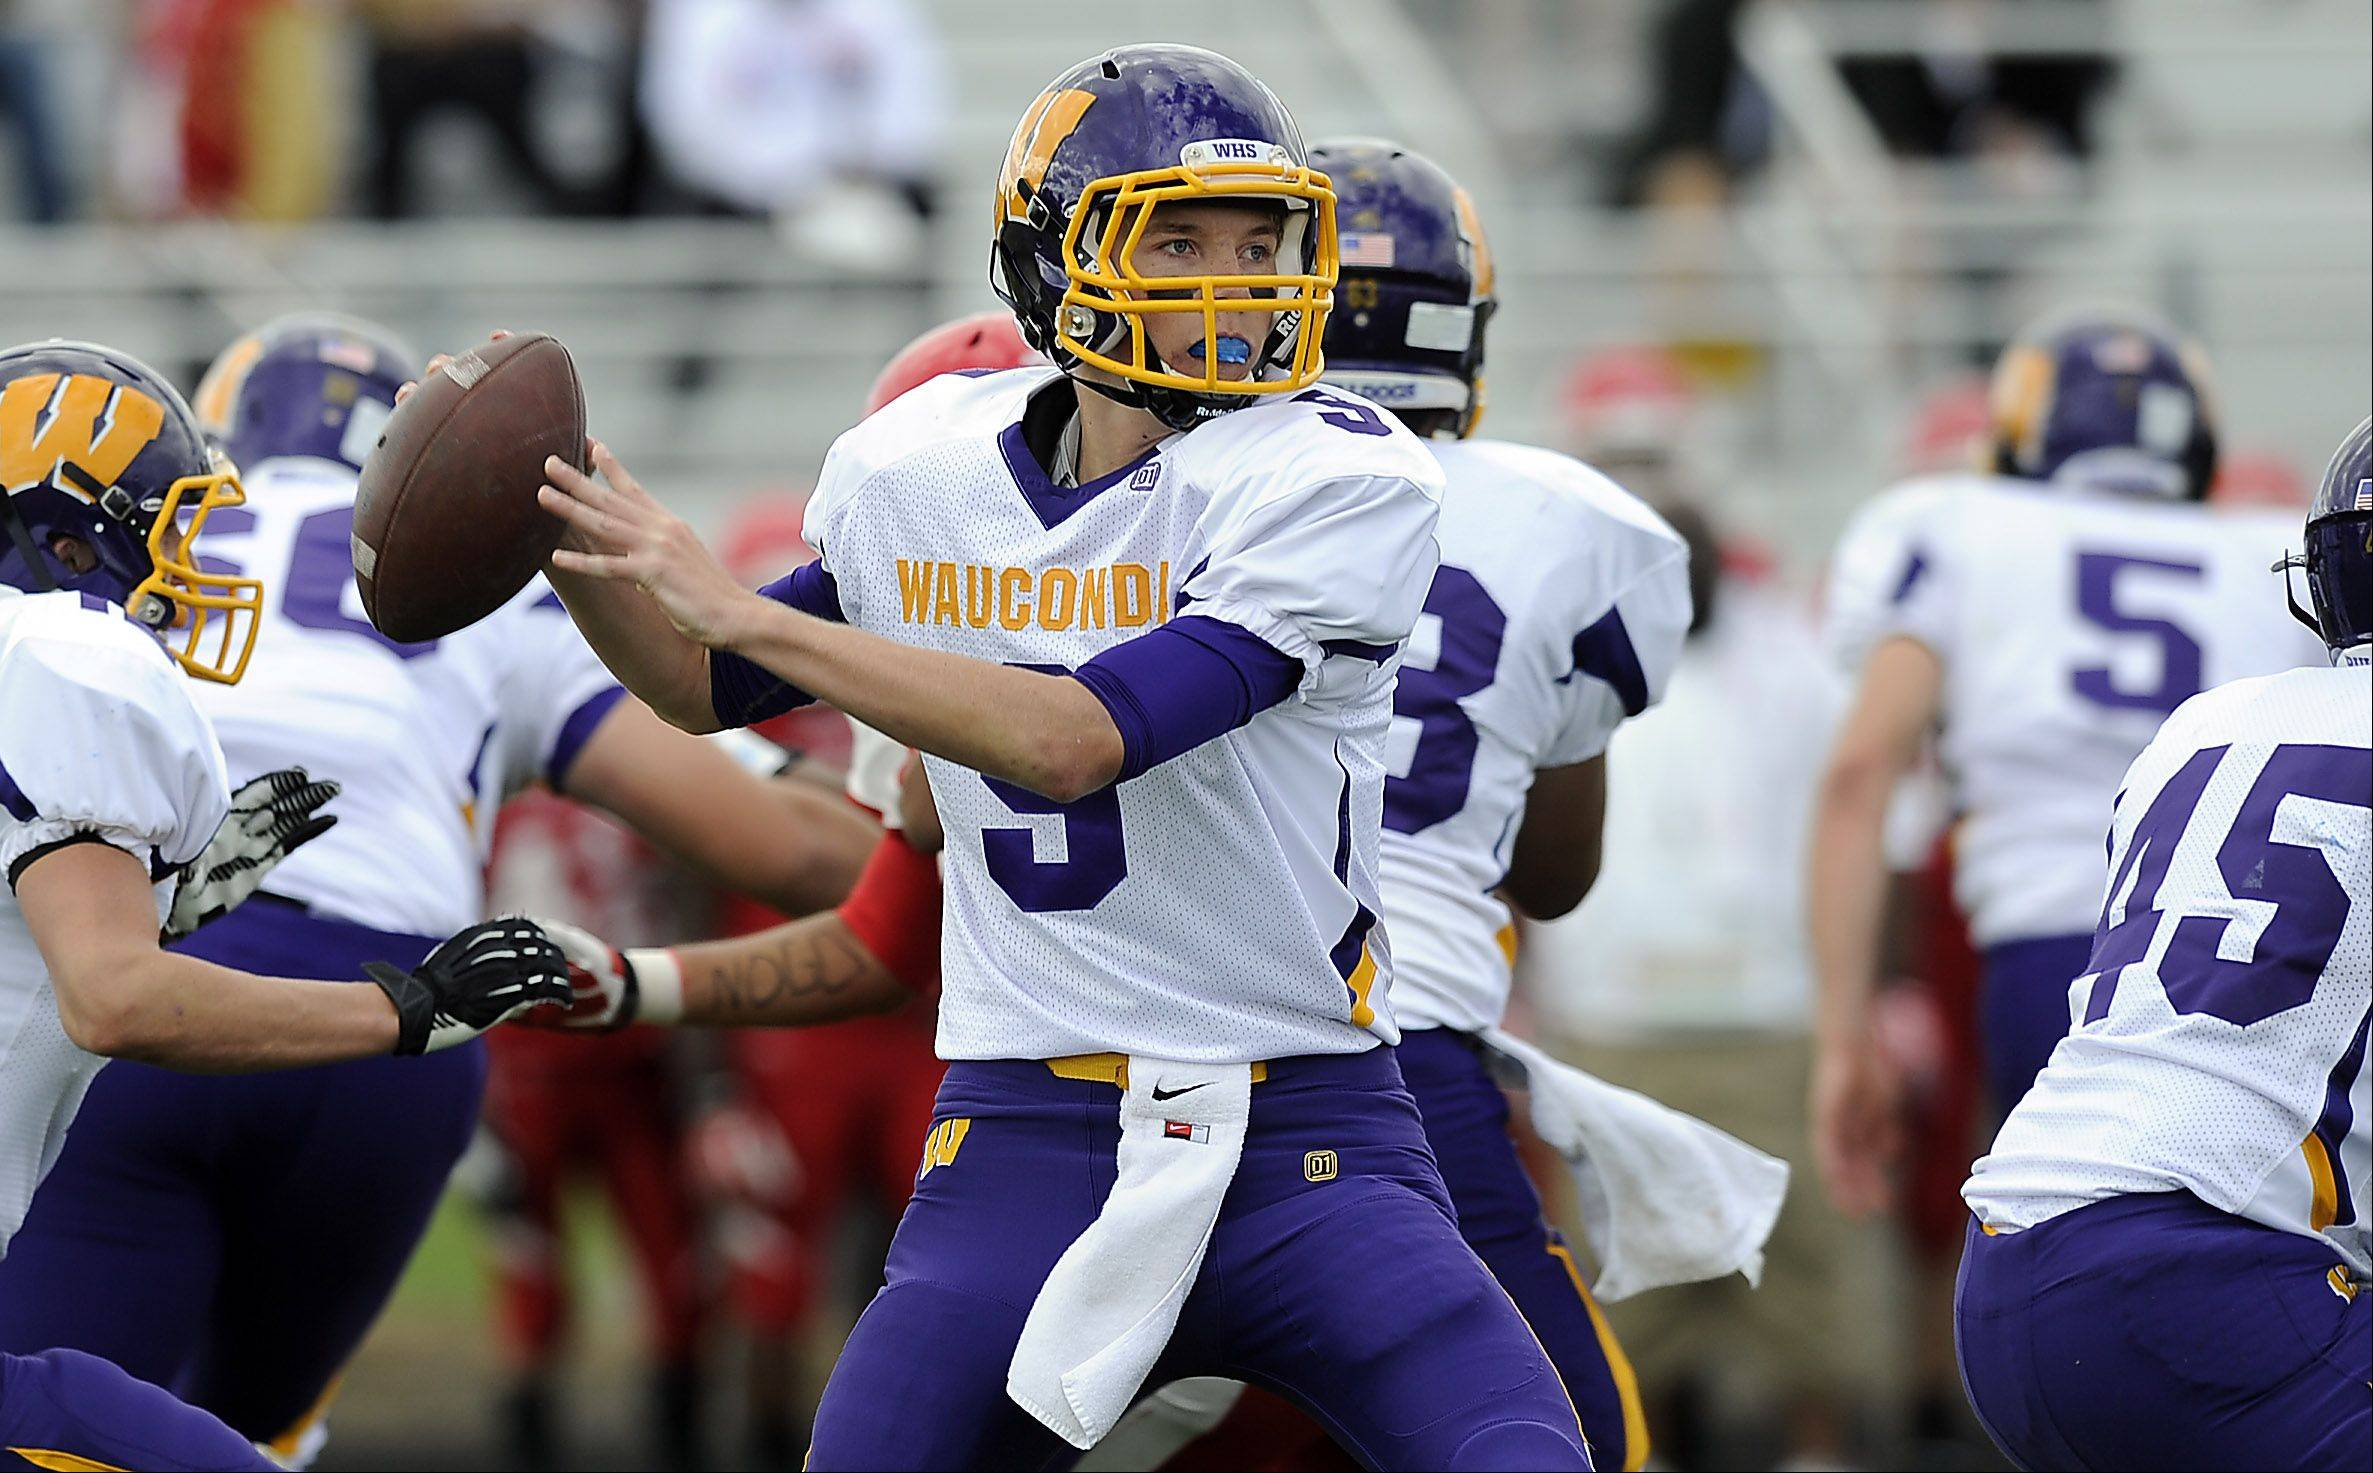 Wauconda's Kevin Malisheski looks for a receiver downfield and fires to Josh Anderson in the first half of varsity footbll at North Chicago High School on Saturday.